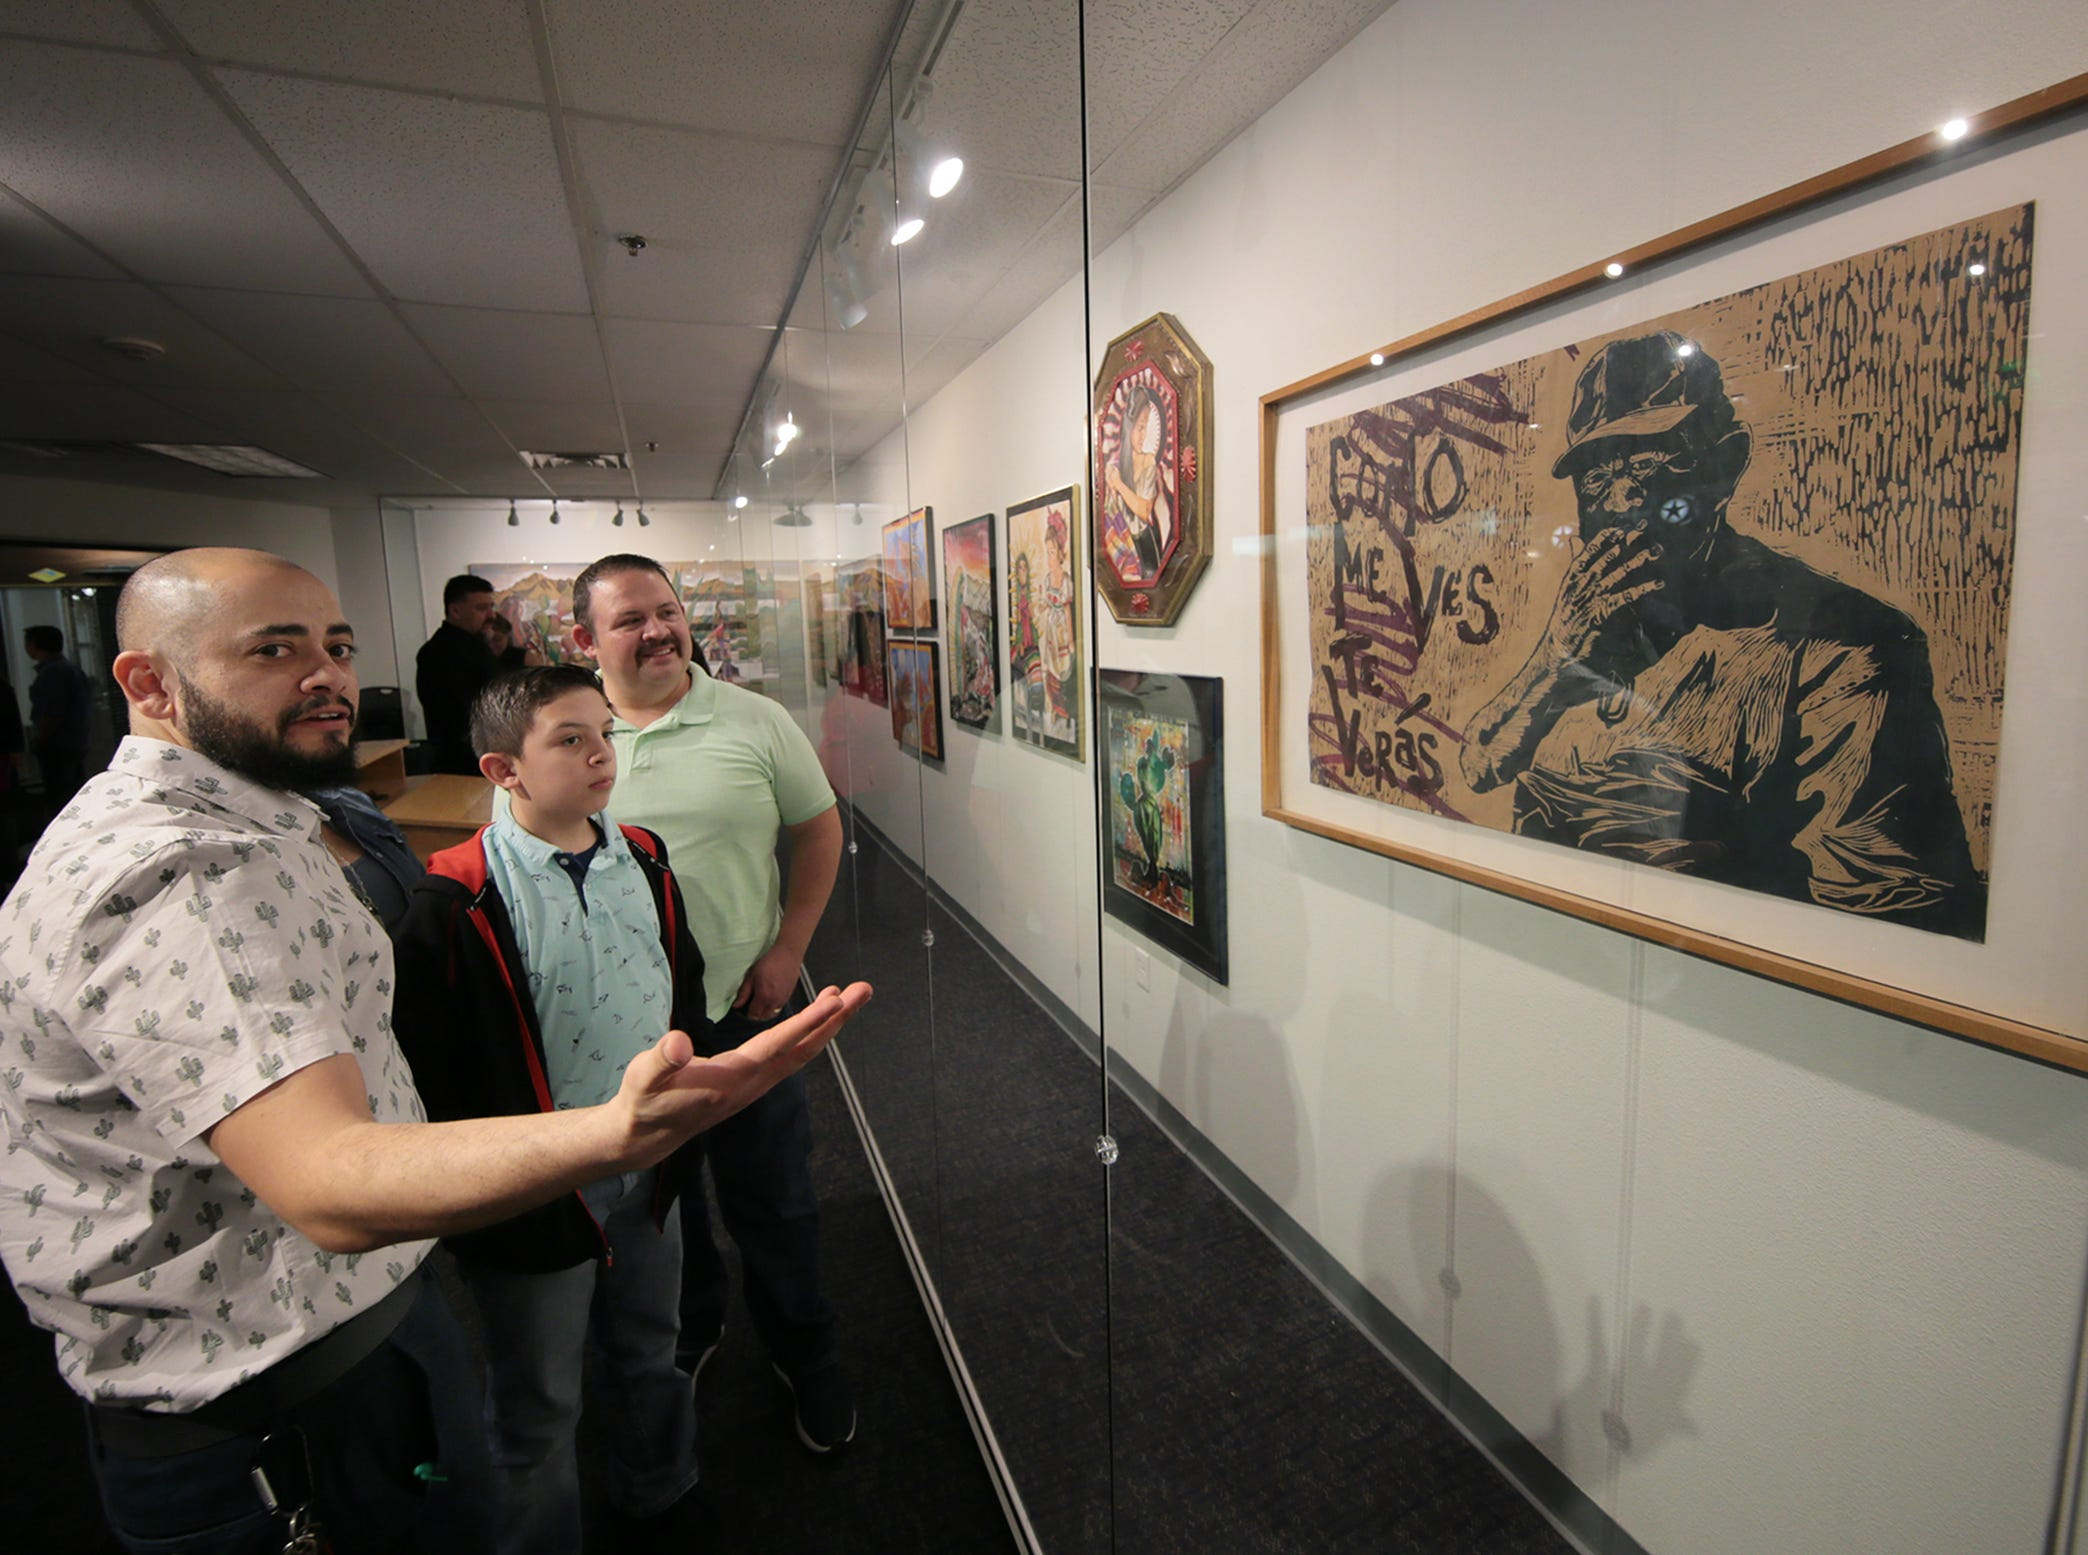 Adrian Lopez shows his print work to his student, Daniel Gomez Jr., 11, and his father at the ribbon cutting for an exhibit of his and Ramiro Ordoñez's artwork Friday, March 8, 2019, at the Art Windows of El Paso at the El Paso International Airport.